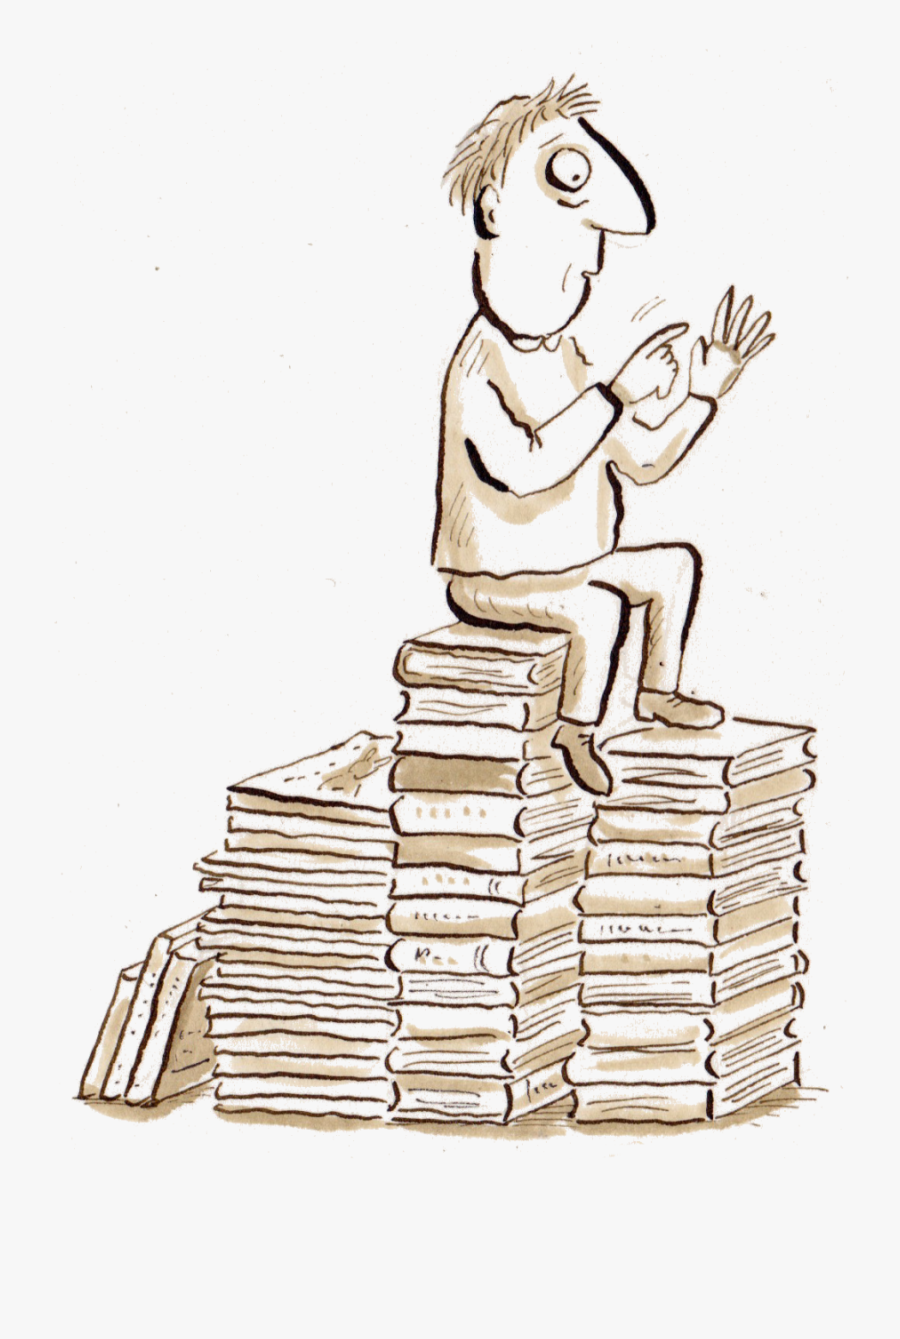 Sometimes New Books Are Made Out Of Old Drawings - Drawing Many Books, Transparent Clipart